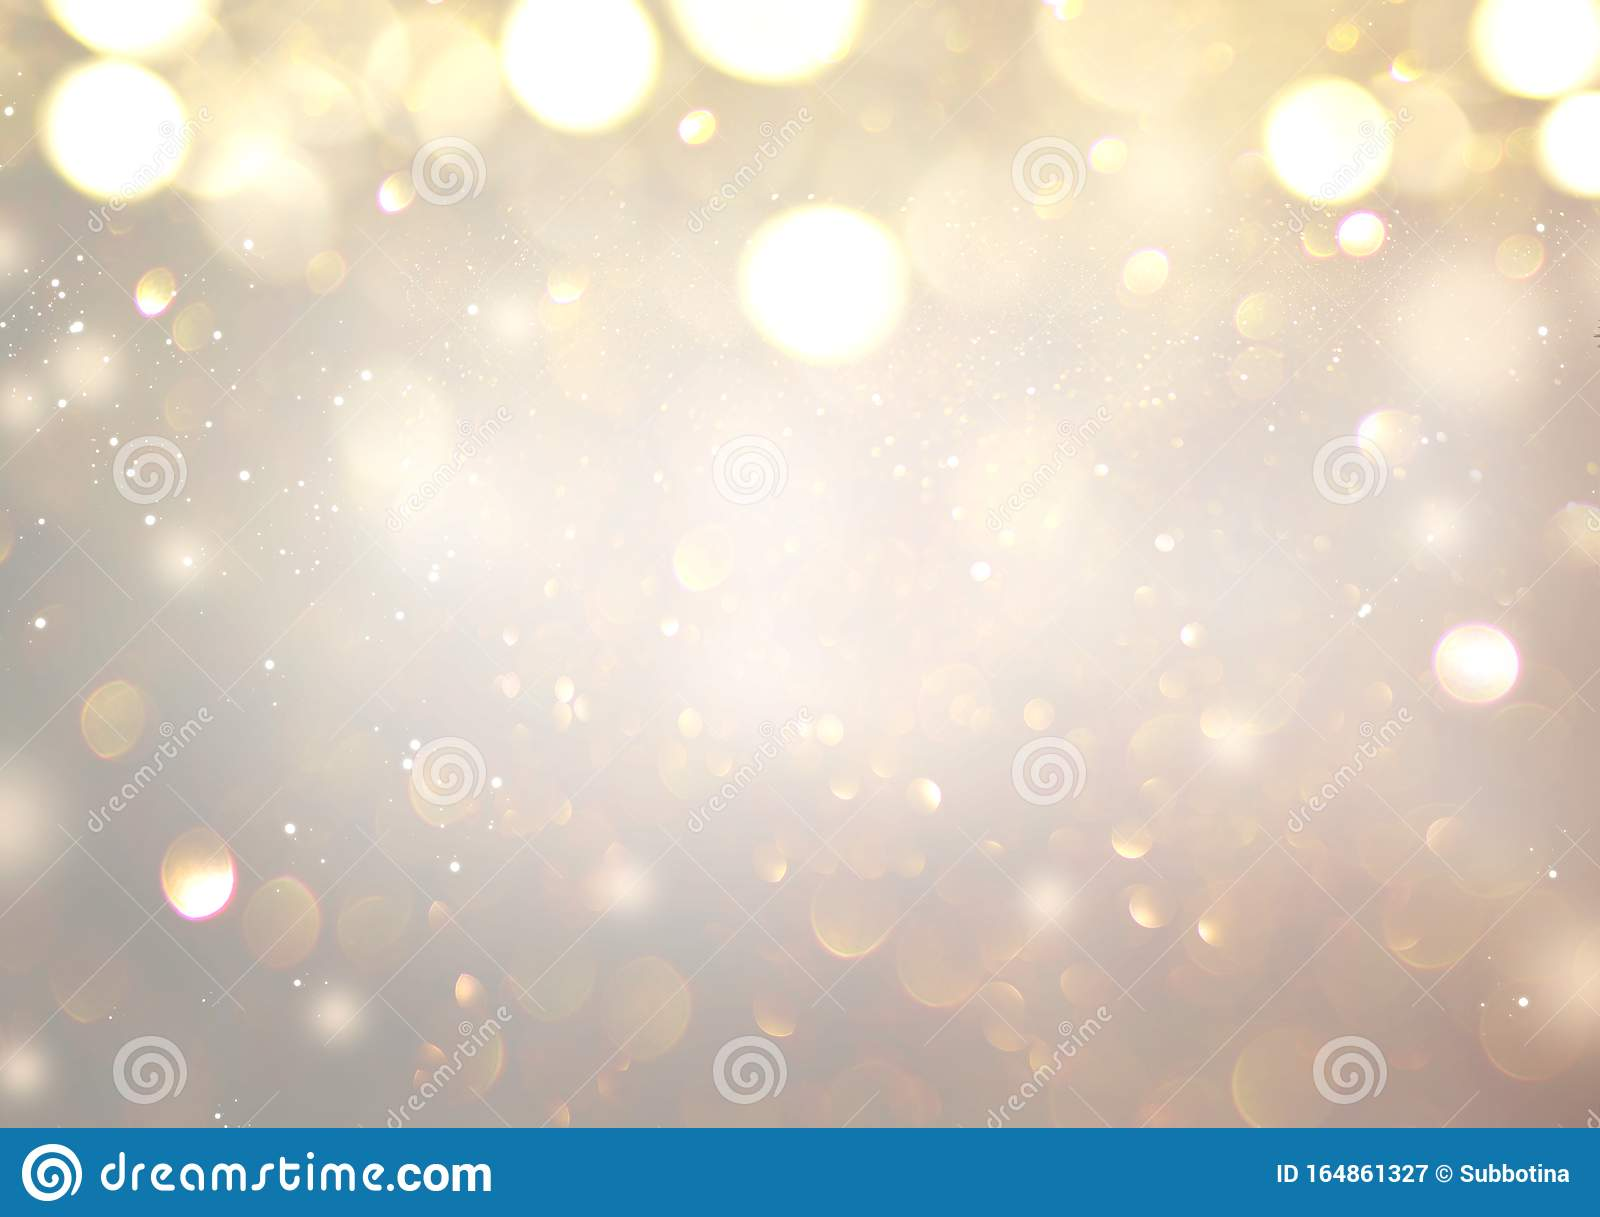 Christmas glowing Golden Background. Christmas lights. Gold Holiday New year Abstract Glitter Defocused Background